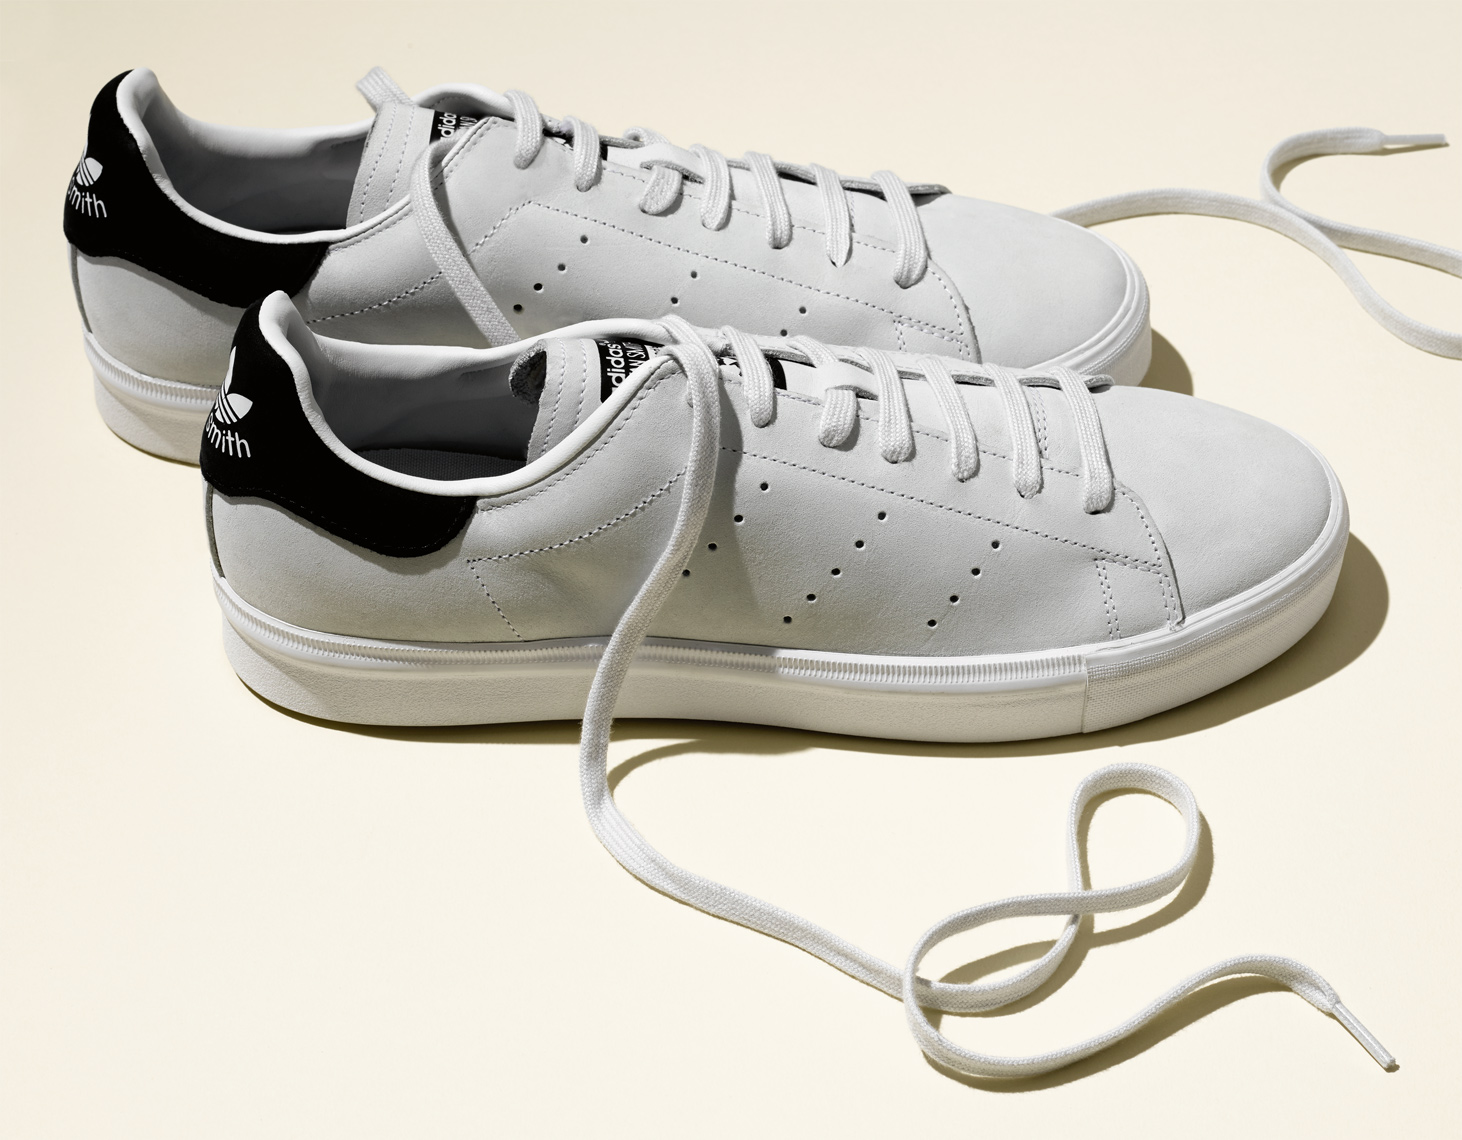 addidas stan smith - still life photographer san francisco